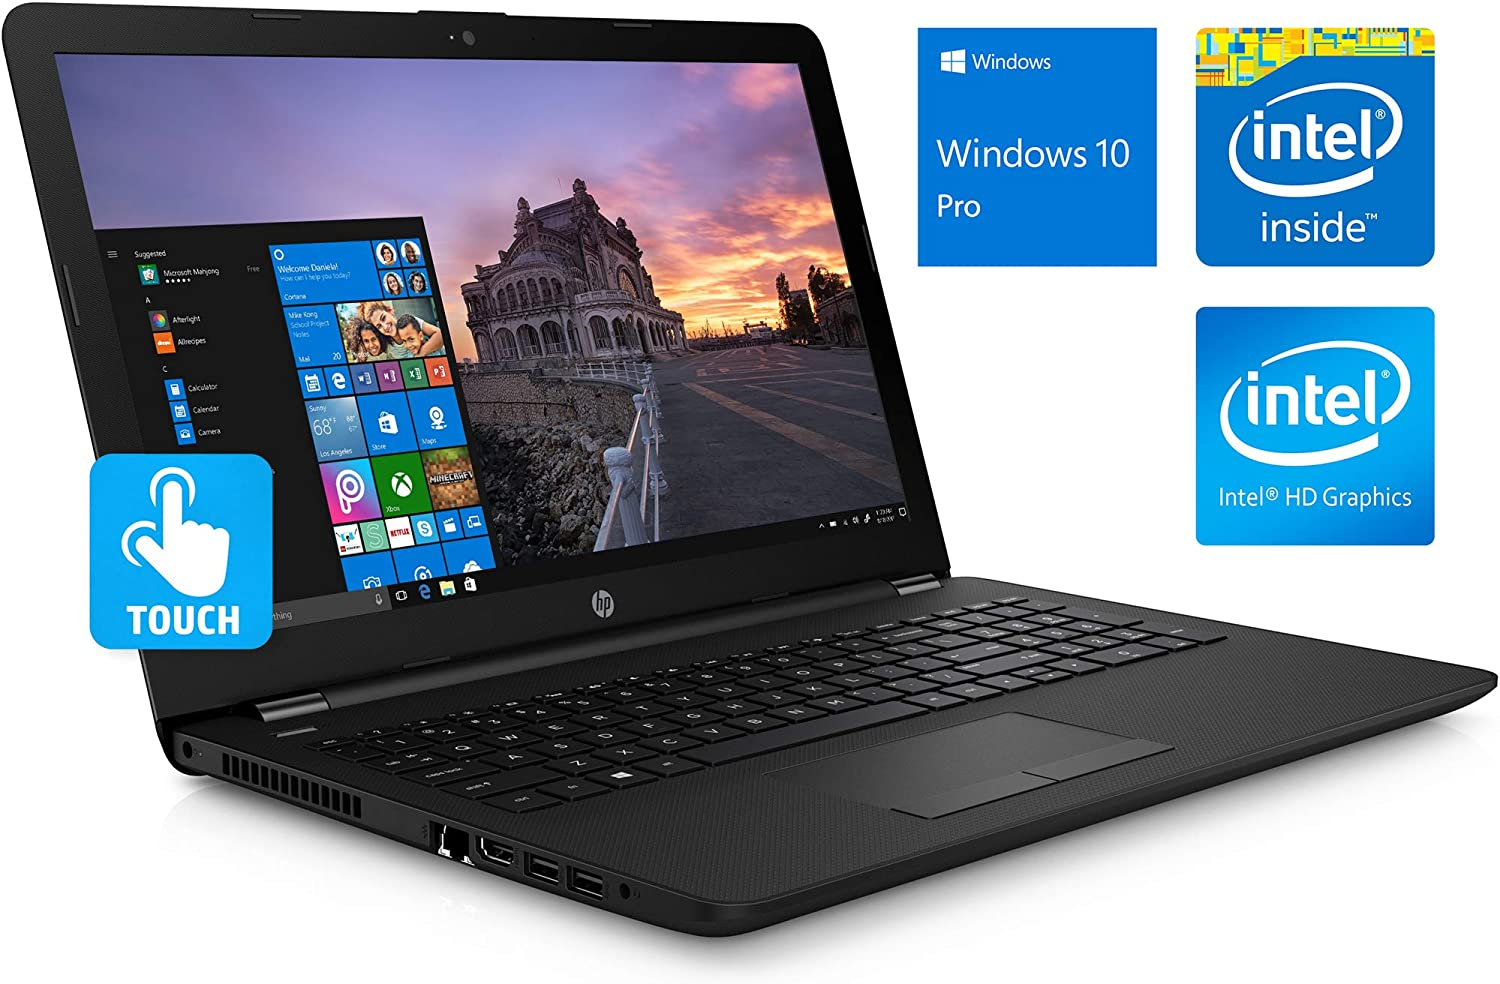 "HP 15.6"" HD Touchscreen Notebook, Intel Quad-Core Pentium Silver N5000 Upto 2.7GHz, 8GB DDR4, 256GB SSD, HDMI, Windows 10 Pro, Customized to Meet Specs as Listed (8GB RAM + 256GB SSD)"